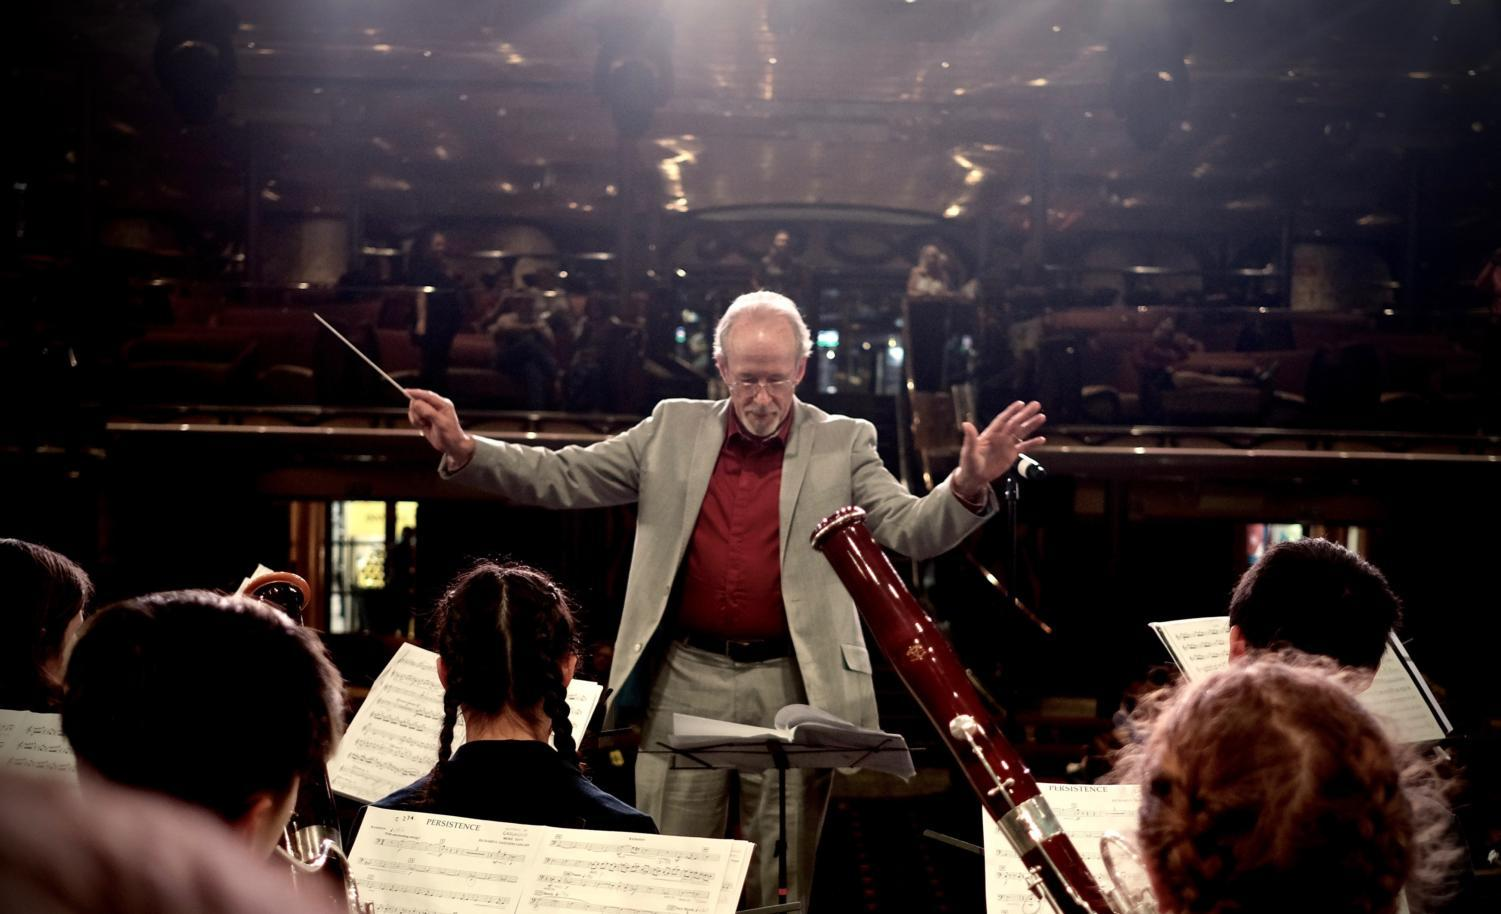 Rory Snyder conducts Symphony Orchestra on board the cruise ship.